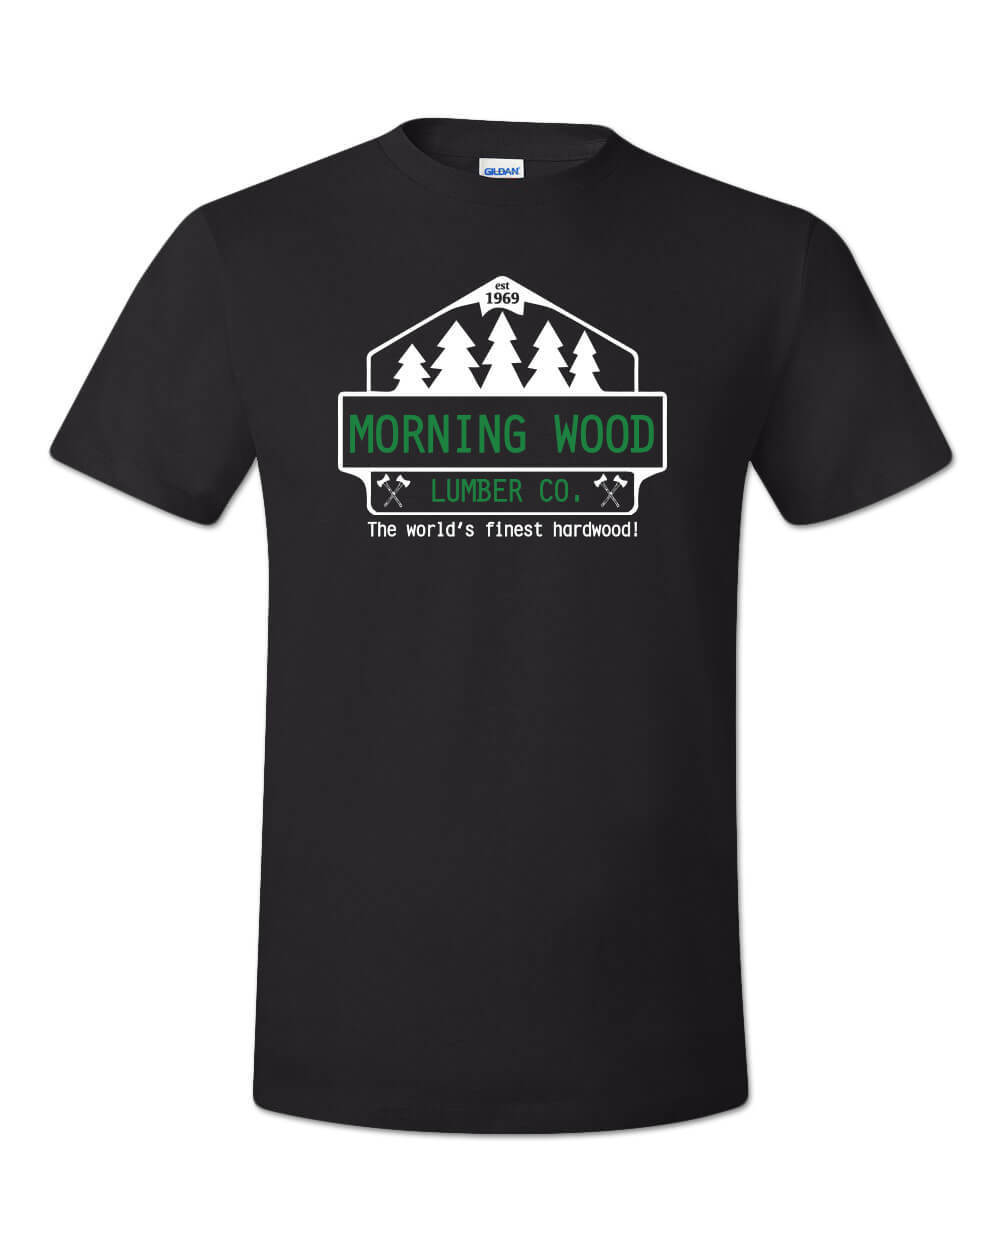 2019 Fashion Summer Style Morning Wood Lumber Company <font><b>Shirt</b></font> <font><b>Funny</b></font> Adult Guy <font><b>Sex</b></font> Humor Party Dude Joke 69 Tee <font><b>Shirt</b></font> 034343 image